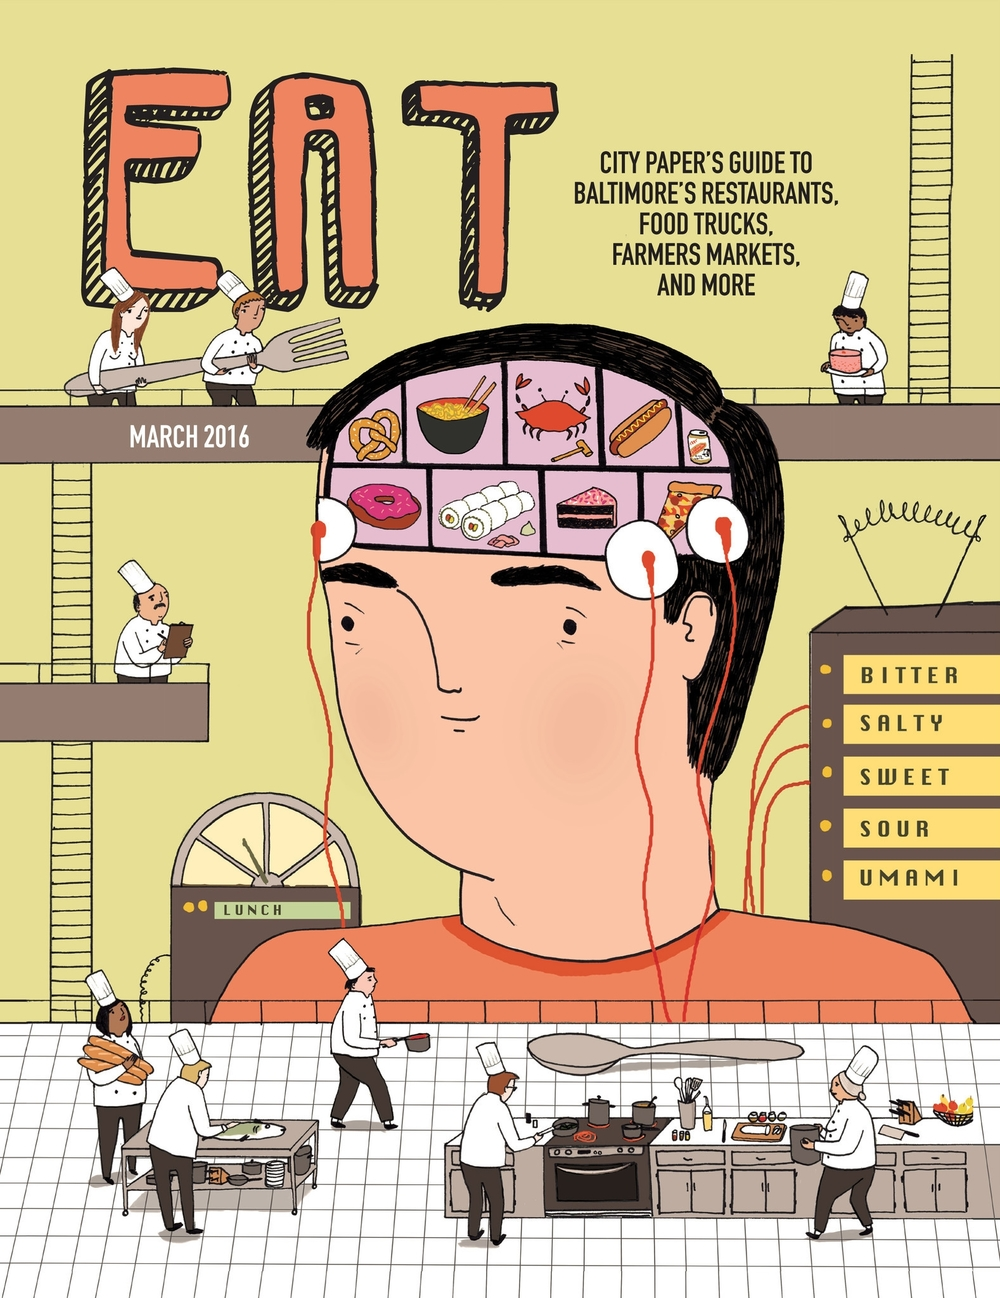 Eat Dining Guide 2016 for City Paper